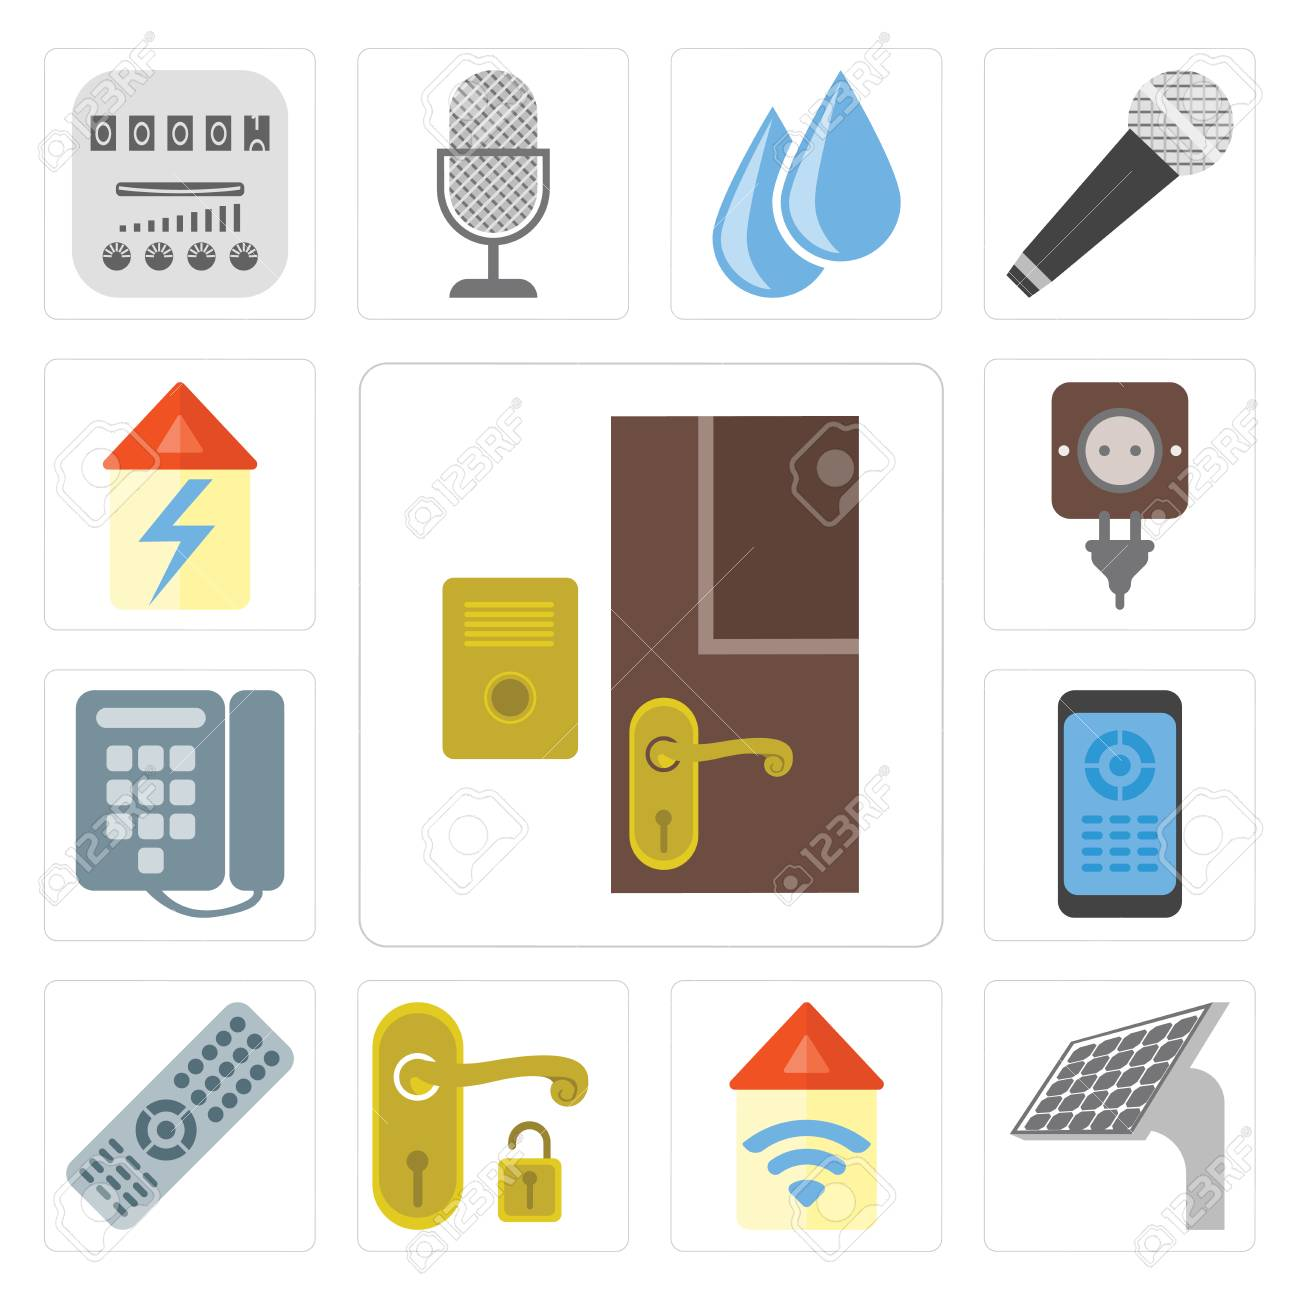 Set Of 13 simple editable icons such as Doorbell, Panel, Automation, Handle, Remote, Dial, Plug, Home, web ui icon pack - 111926047